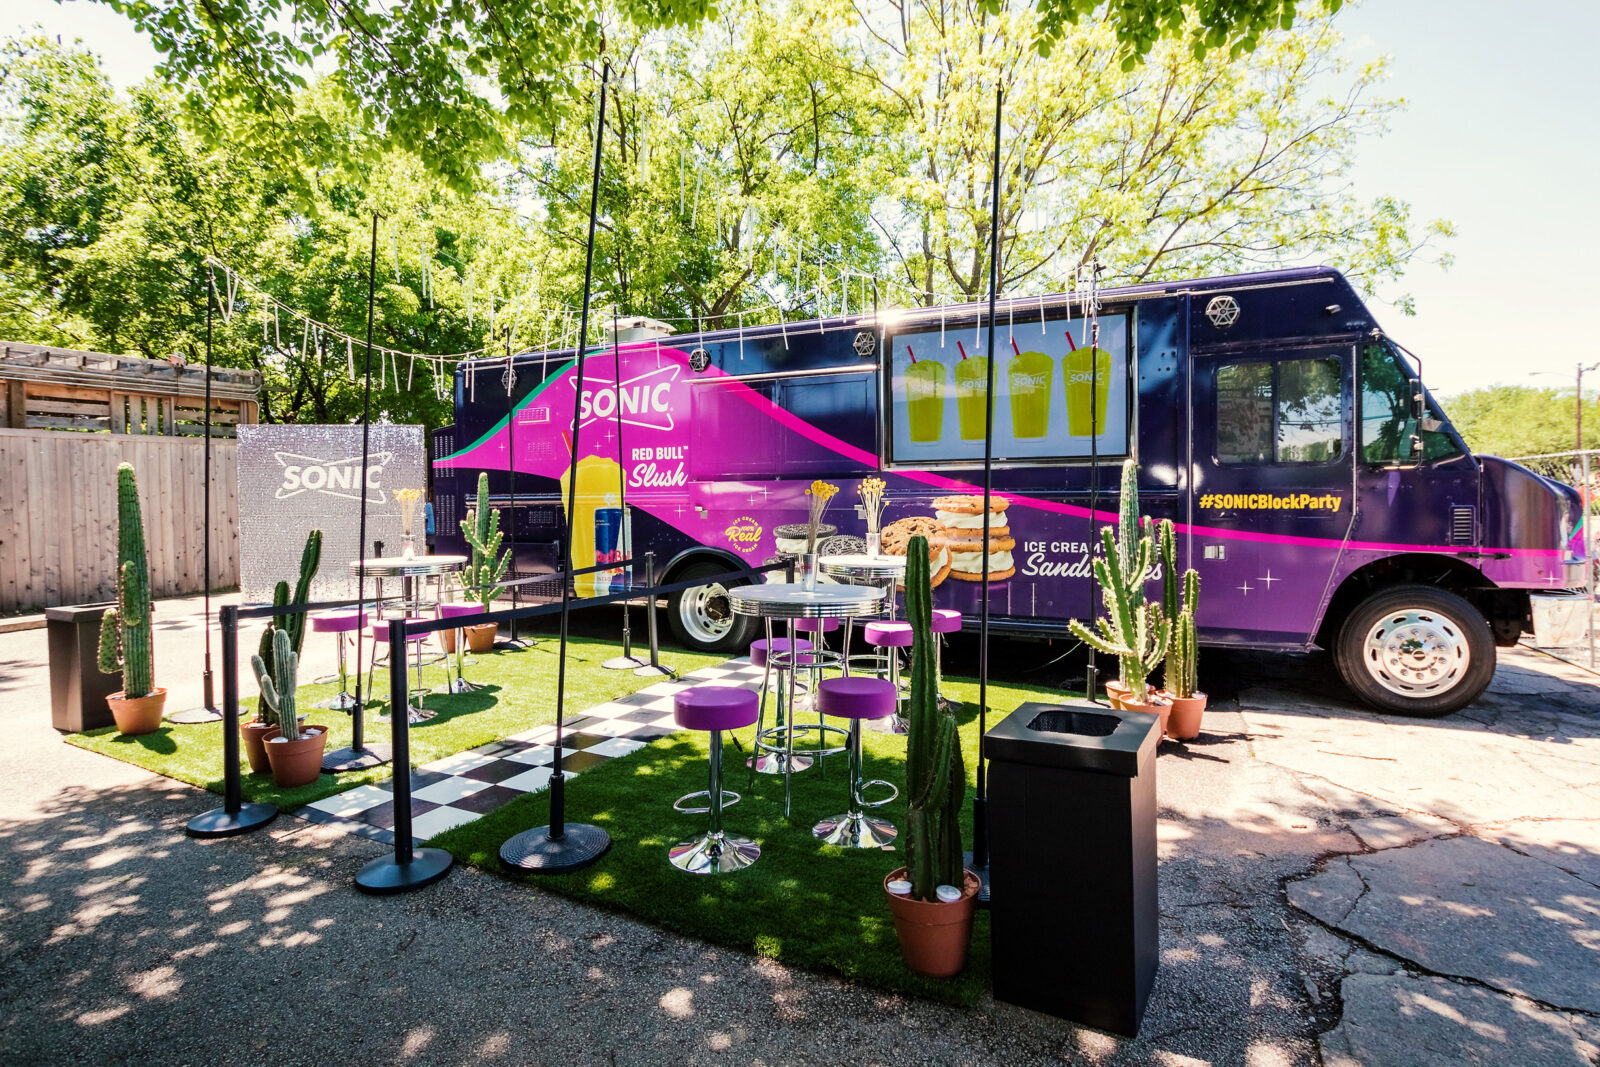 sonic block party food truck by marketing agency